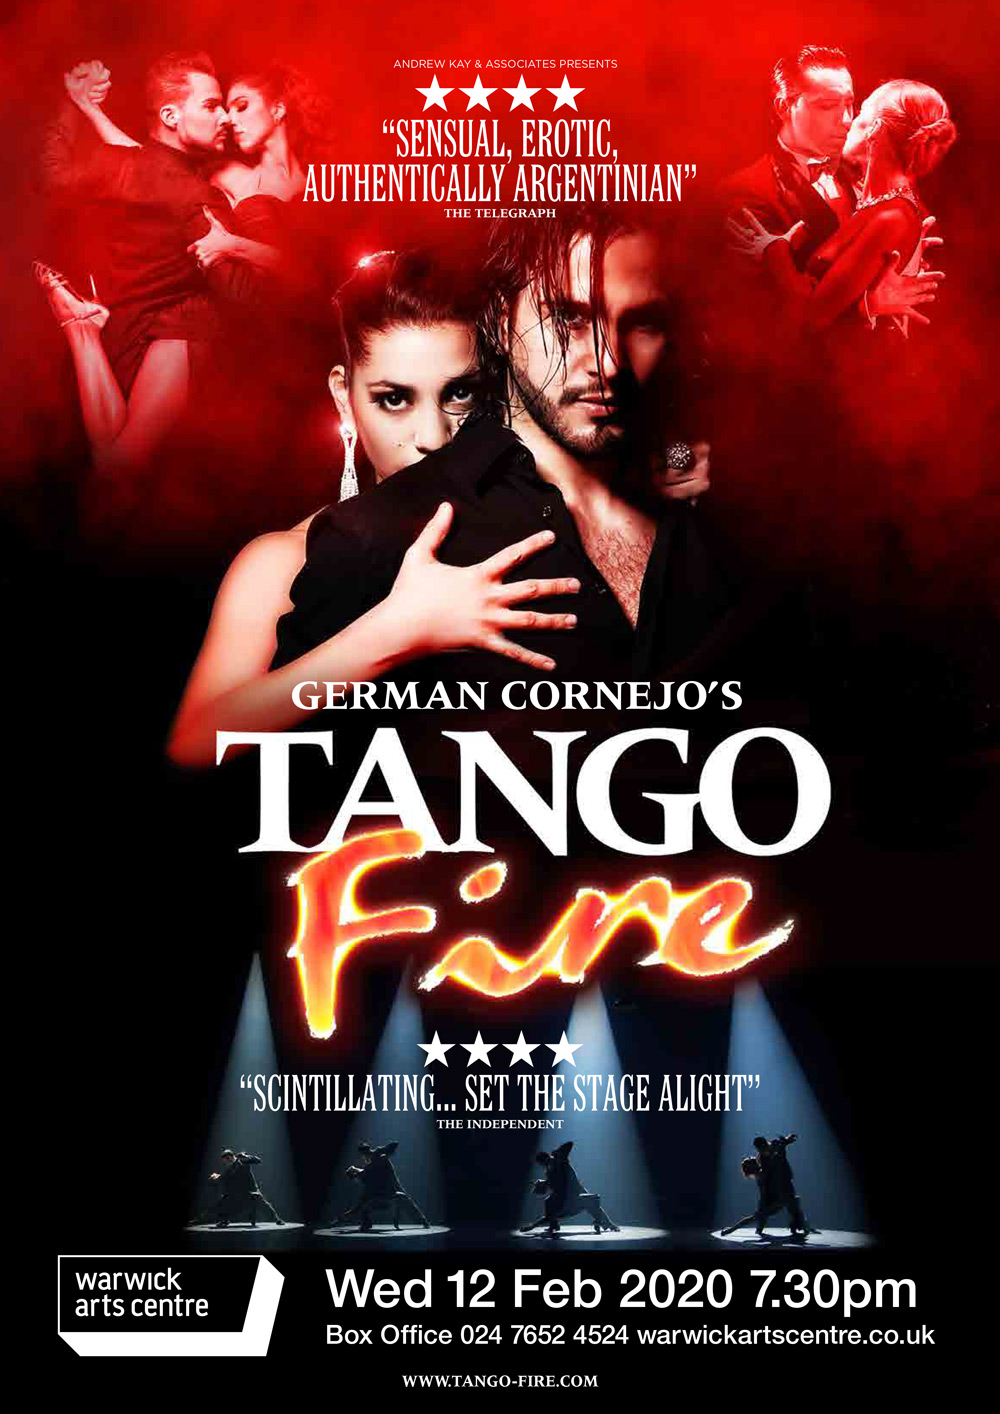 Tango Fire Poster Show Image